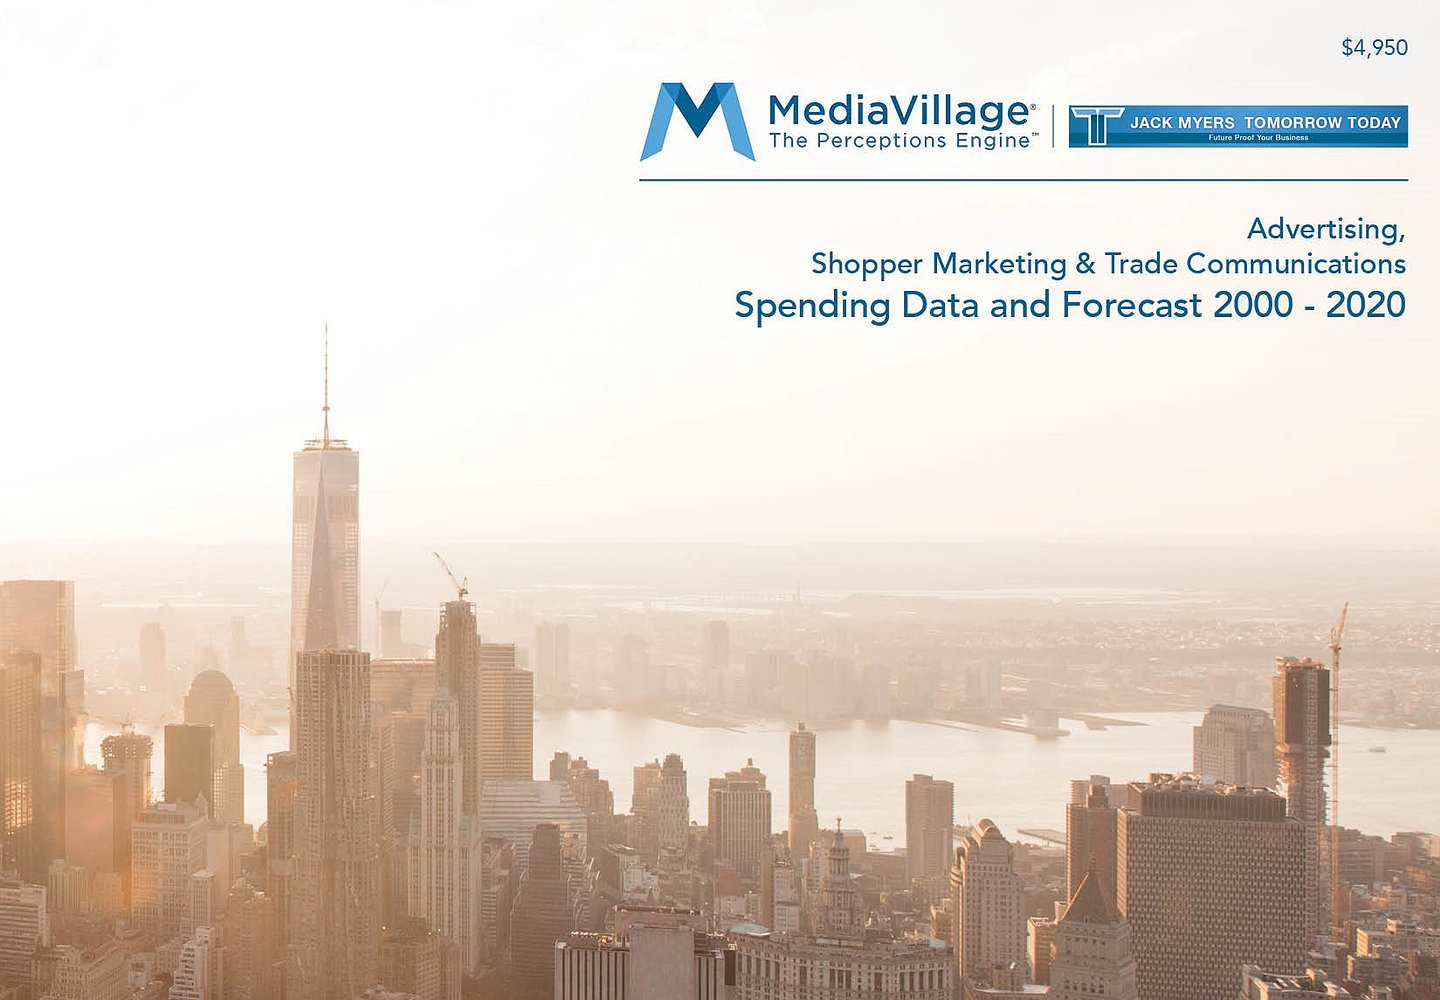 Download Today: Total U.S. Digital Ad Spend Set to Double National TV Ad Spend by 2020